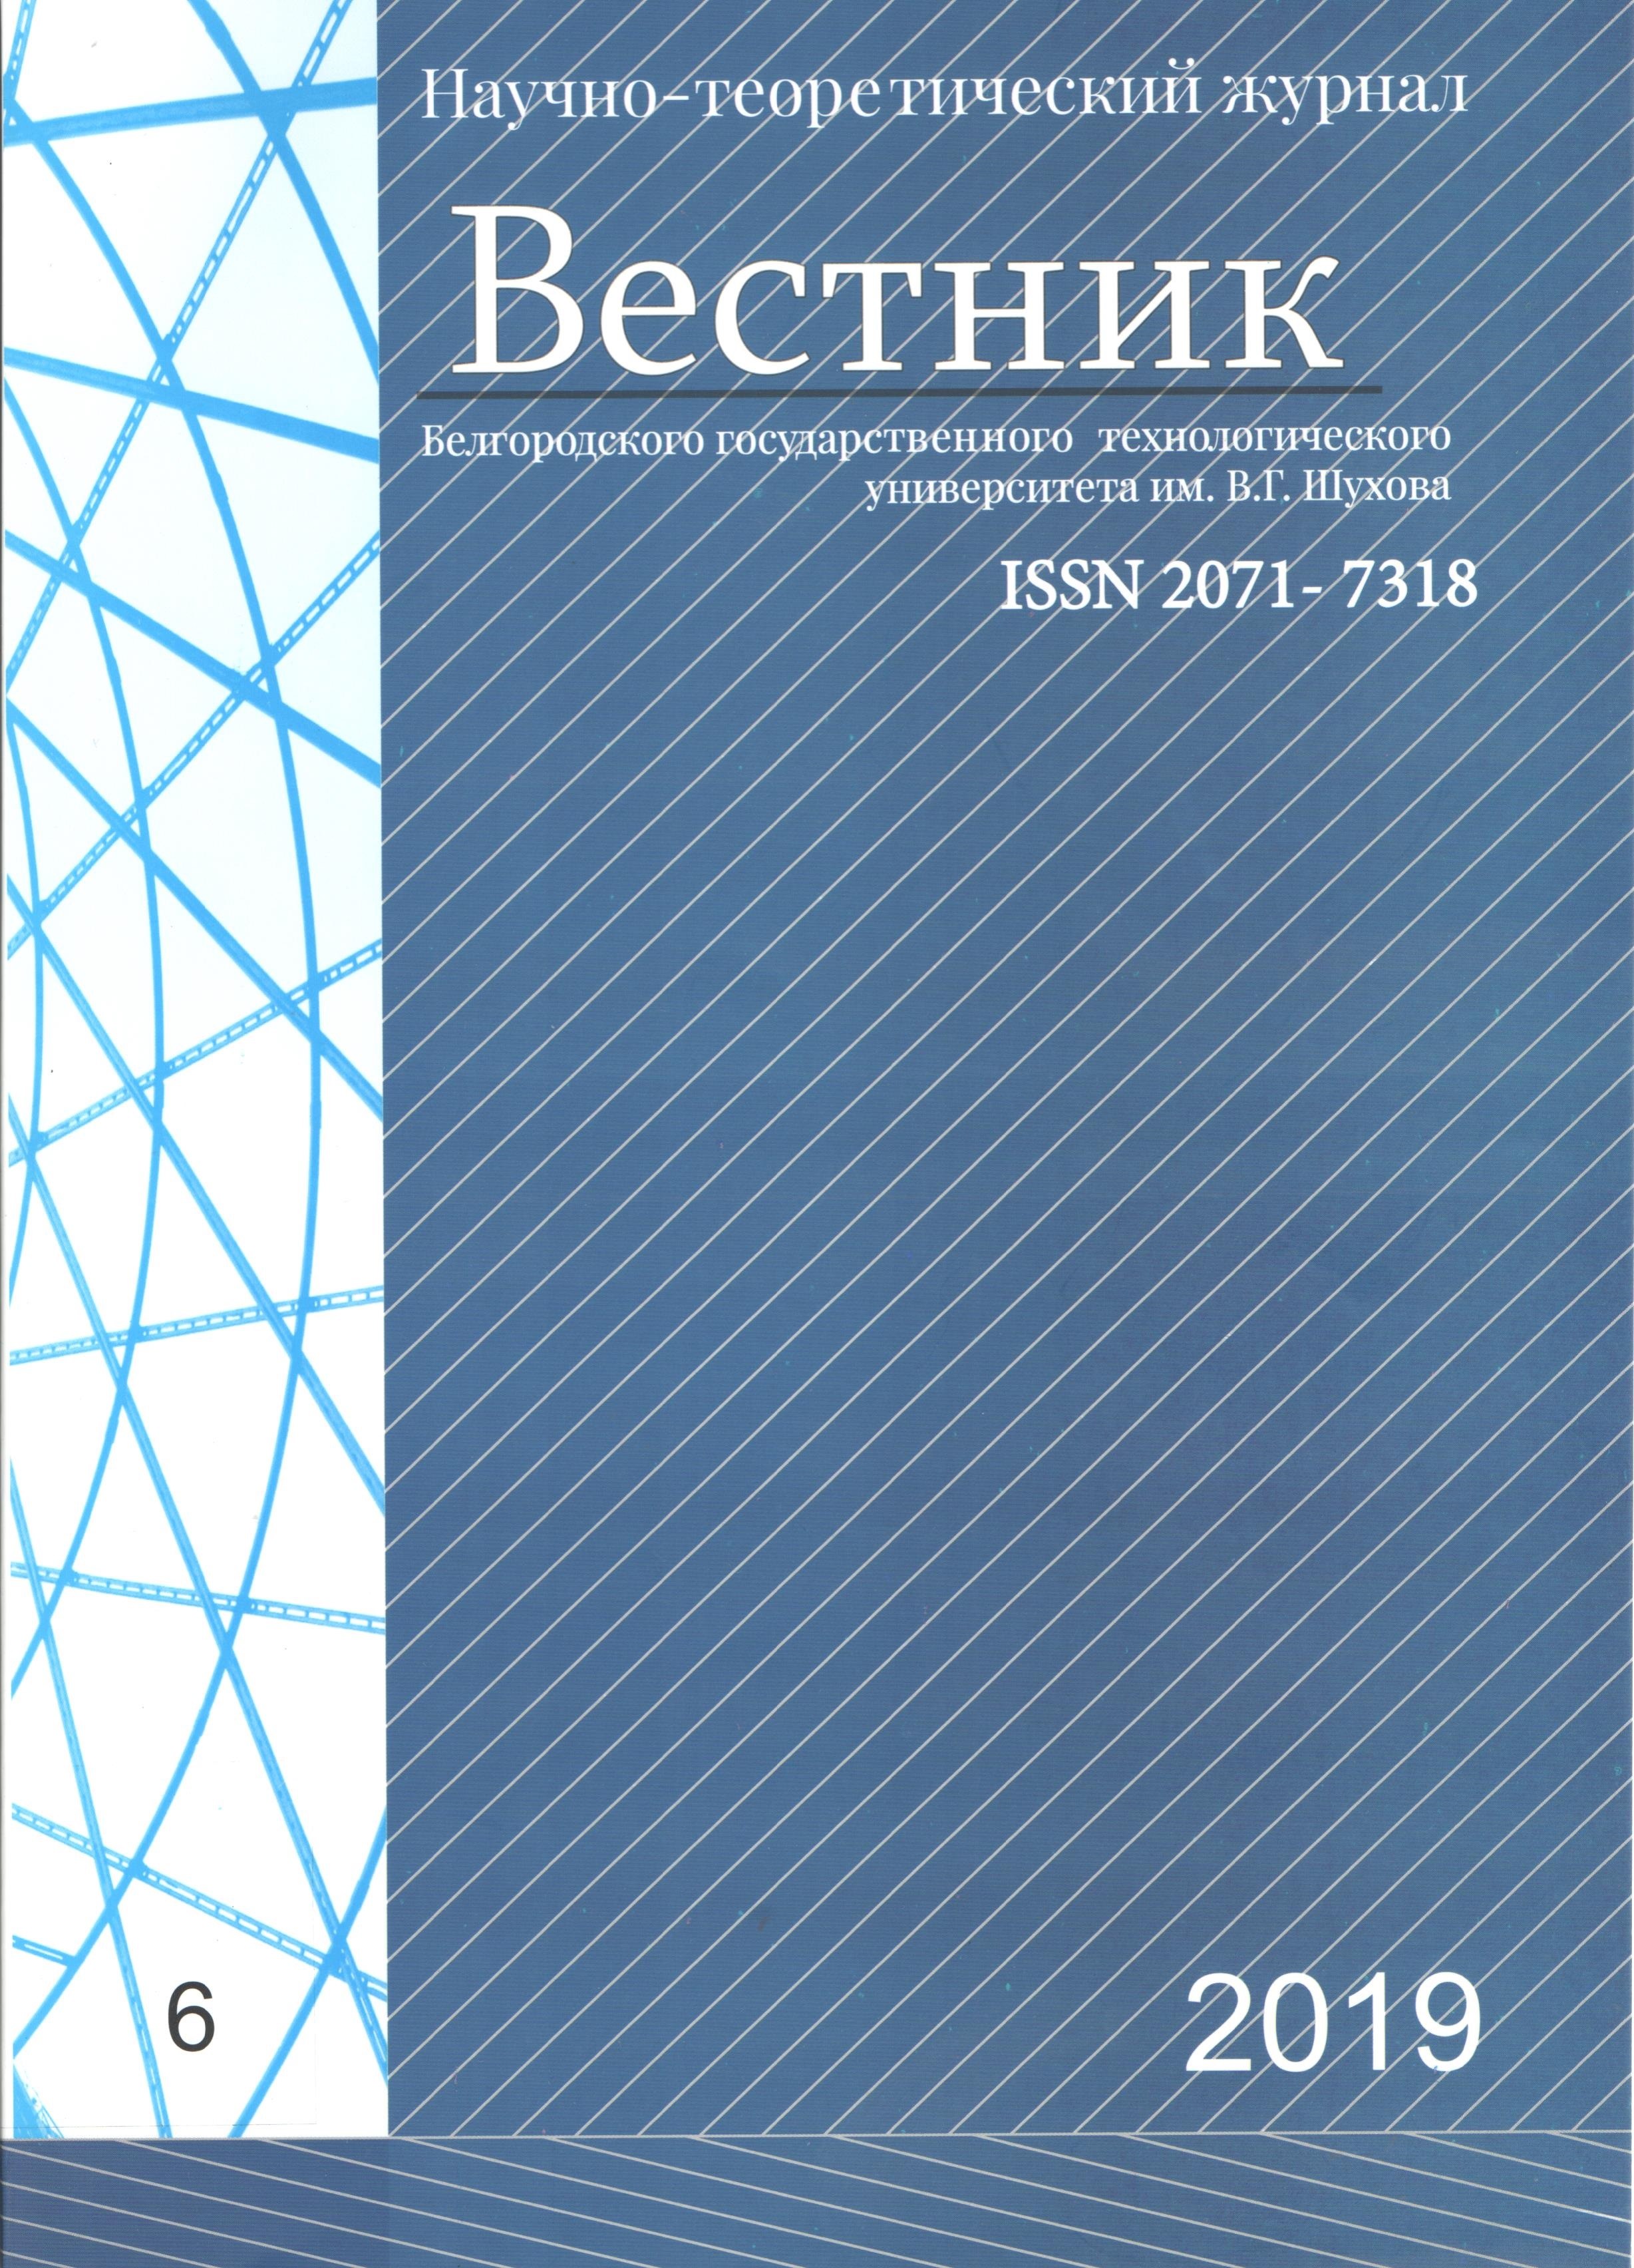 Bulletin of Belgorod State Technological University named after. V. G. Shukhov